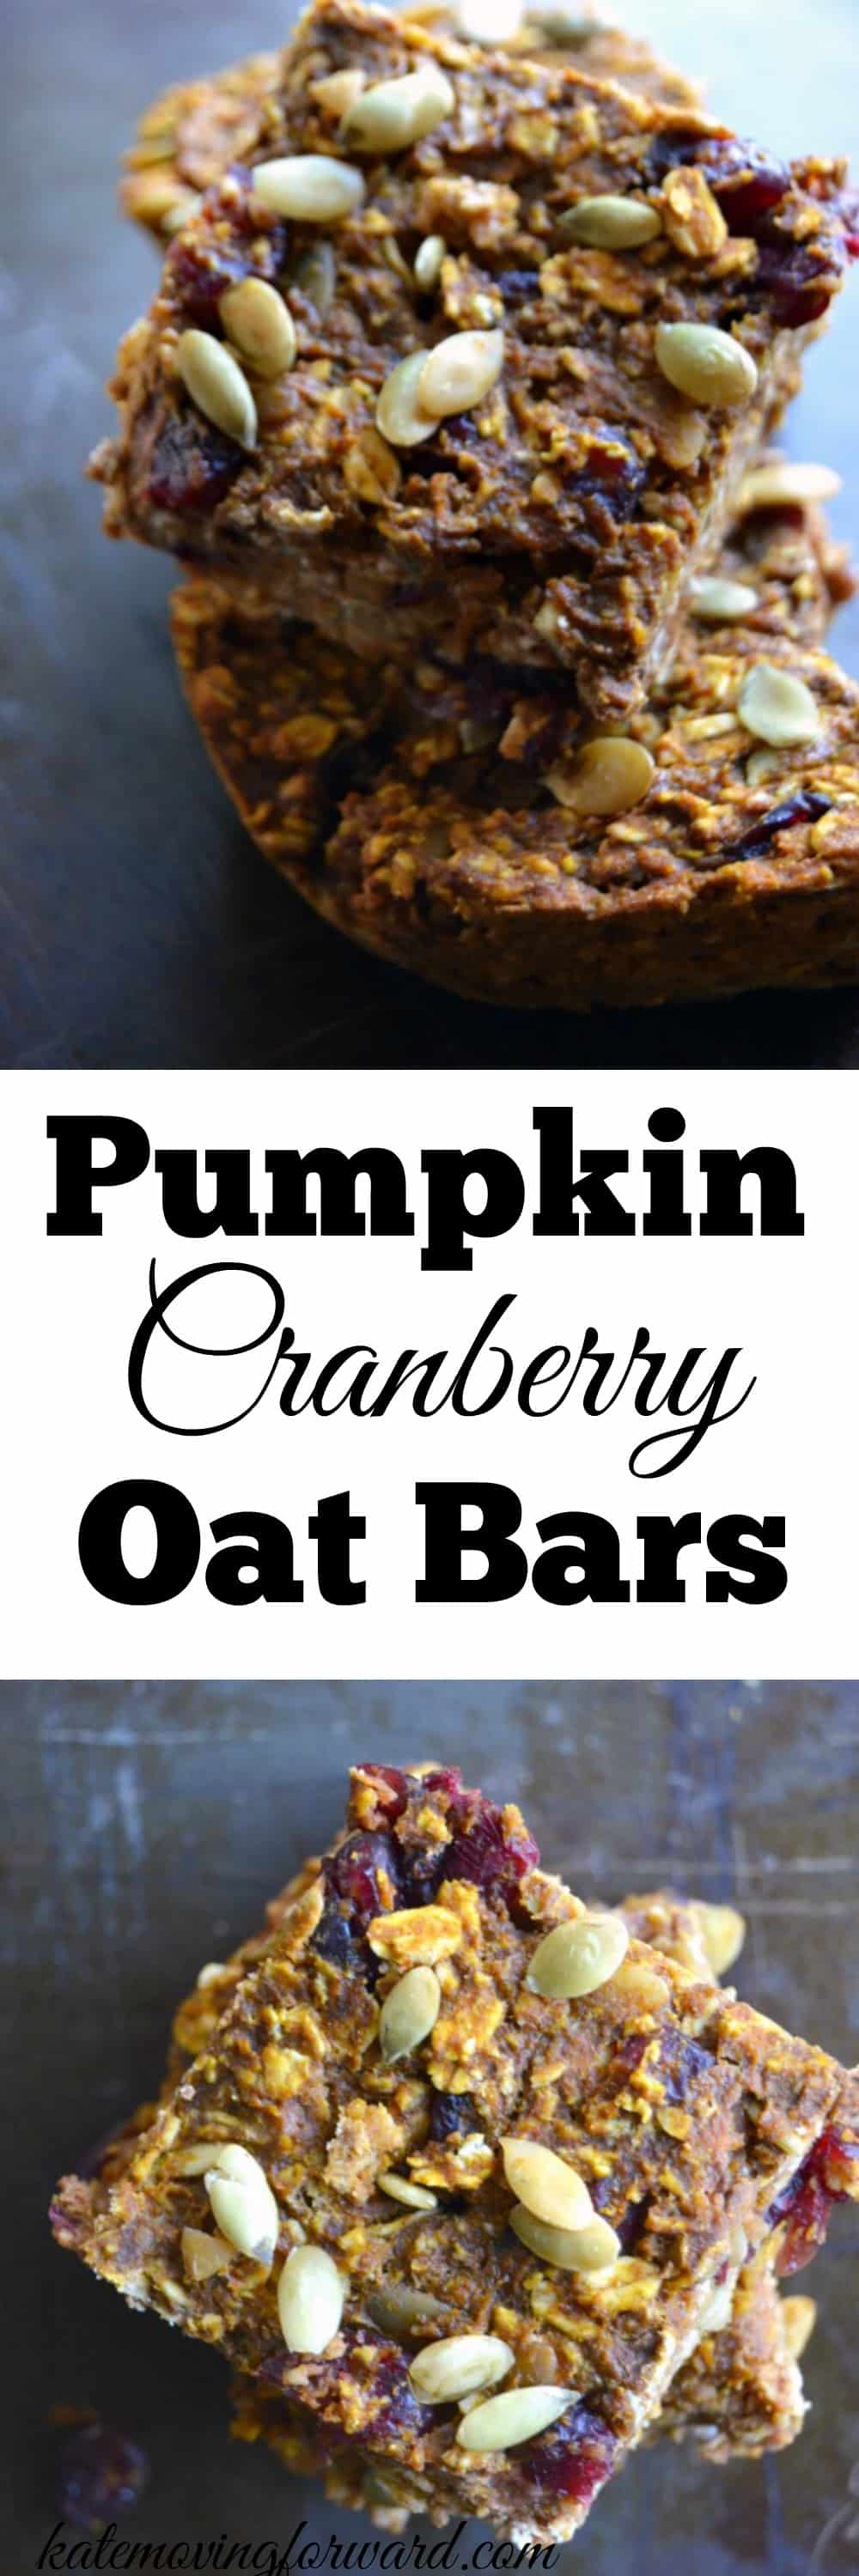 These Cranberry Pumpkin Oat Bars are the perfect healthy fall snack! They are full of healthy oats, fiber, delicious pumpkin and sweet cranberries and are so satisfying.